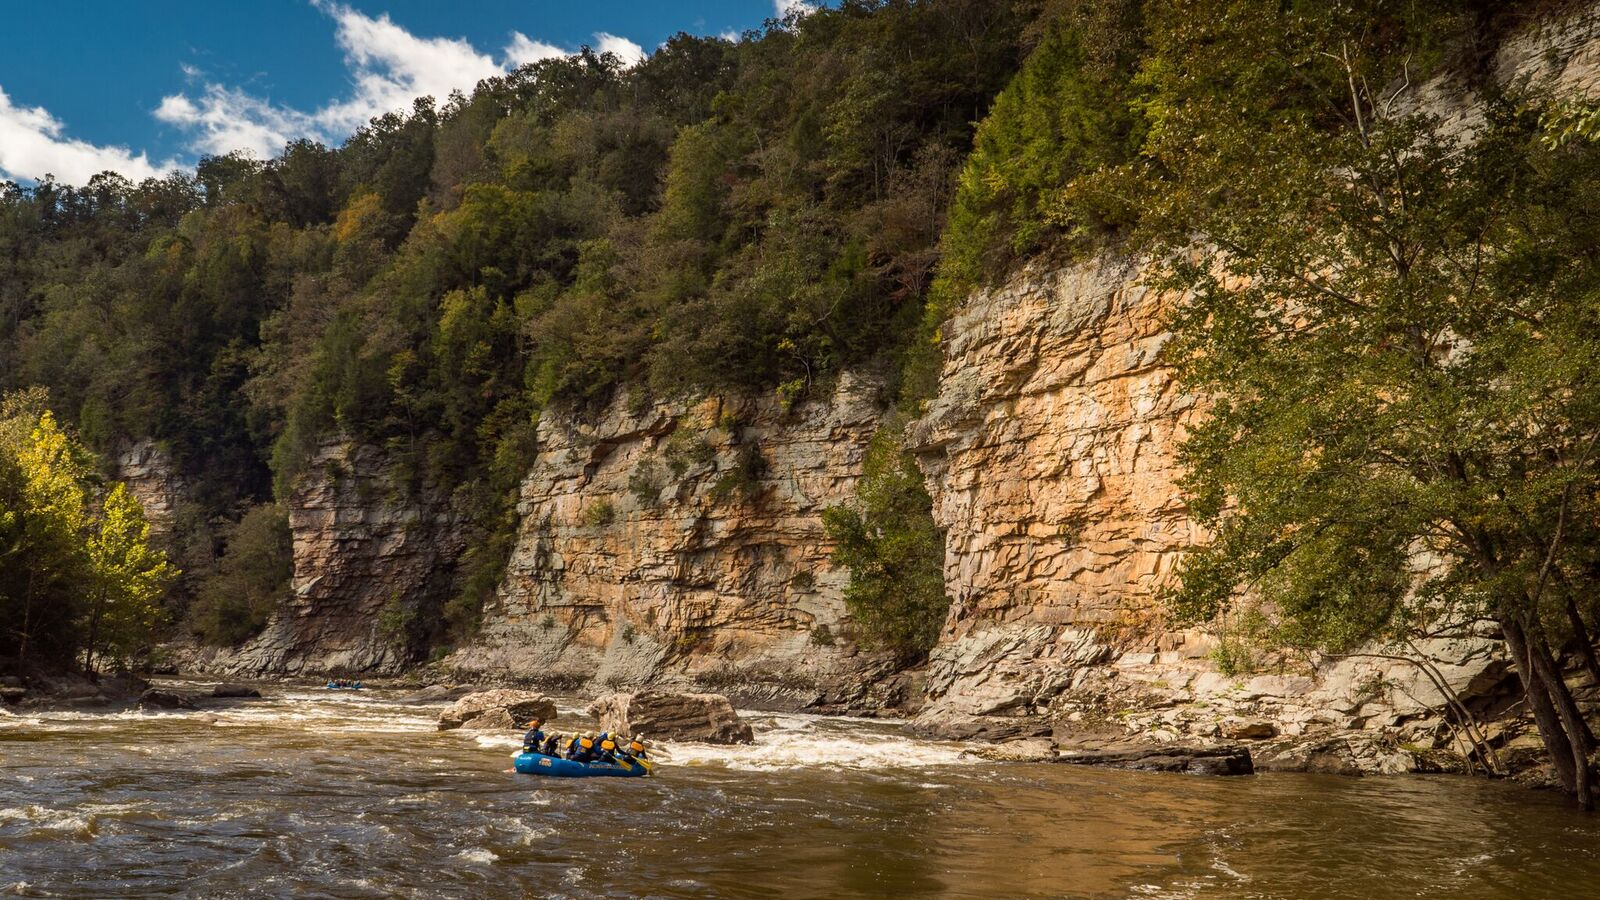 A raft passing a canyon wall on the Lower Gauley